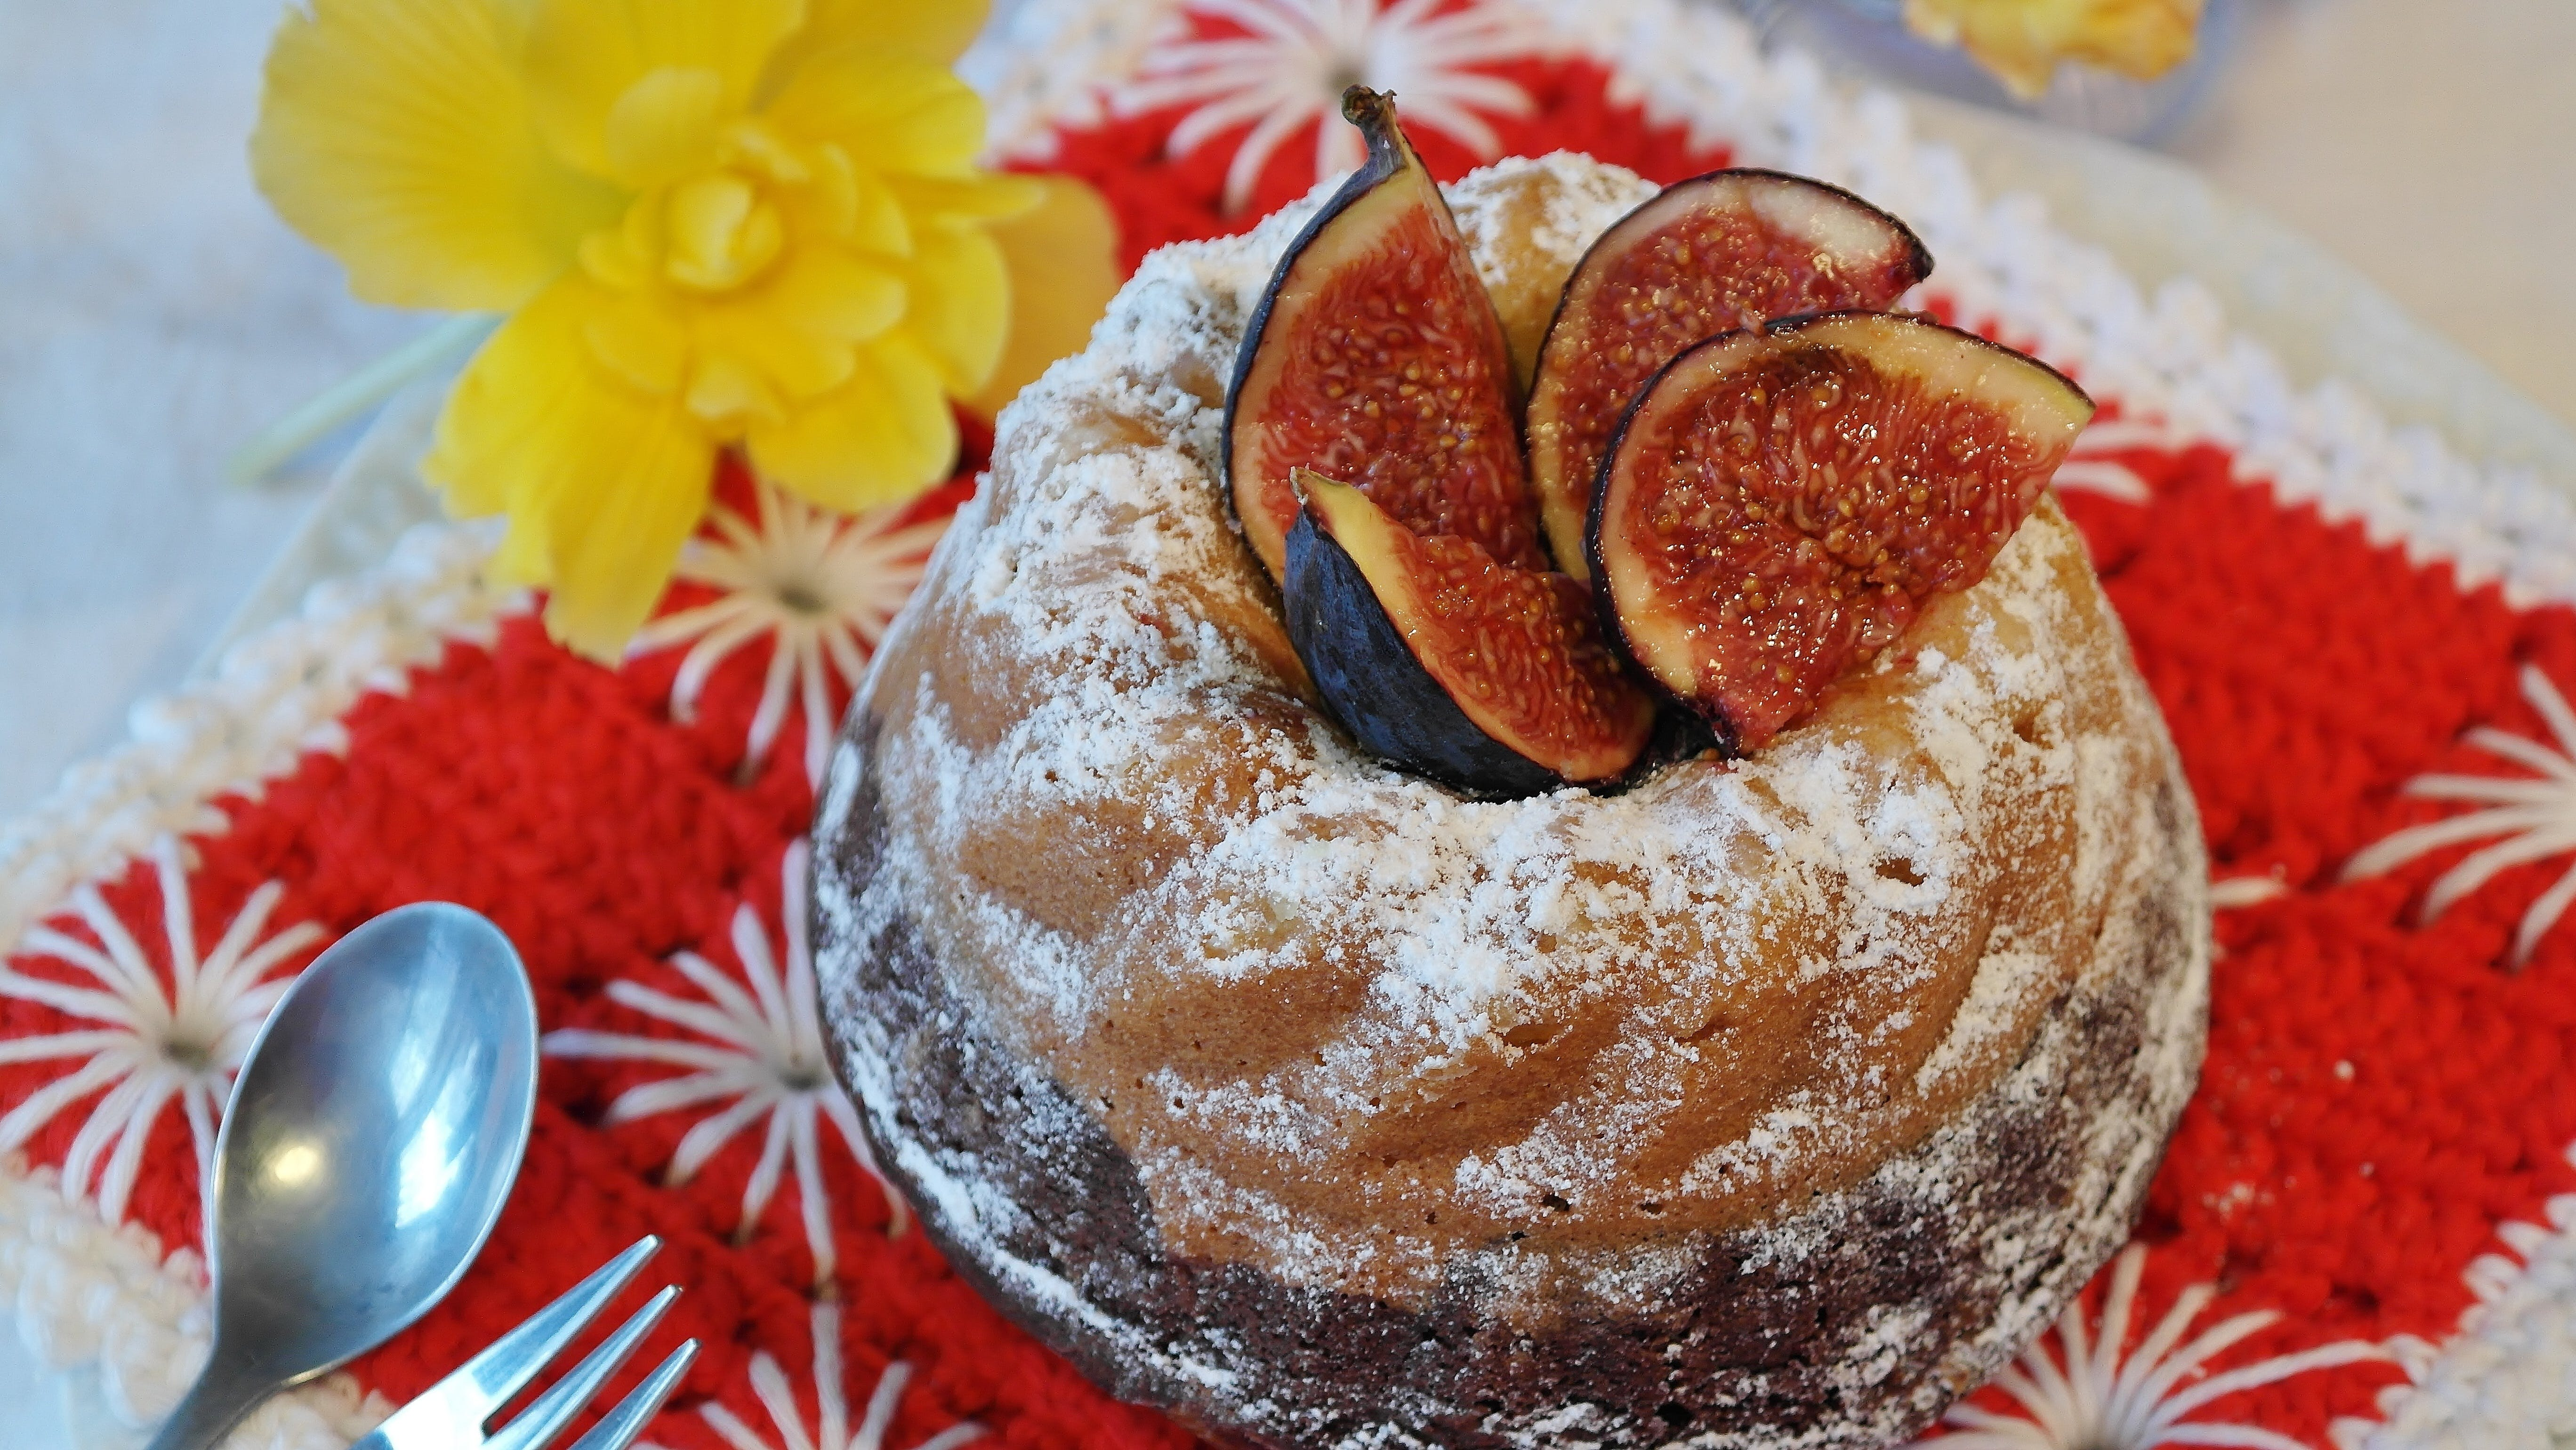 Round Brown Food With Sliced Fruit